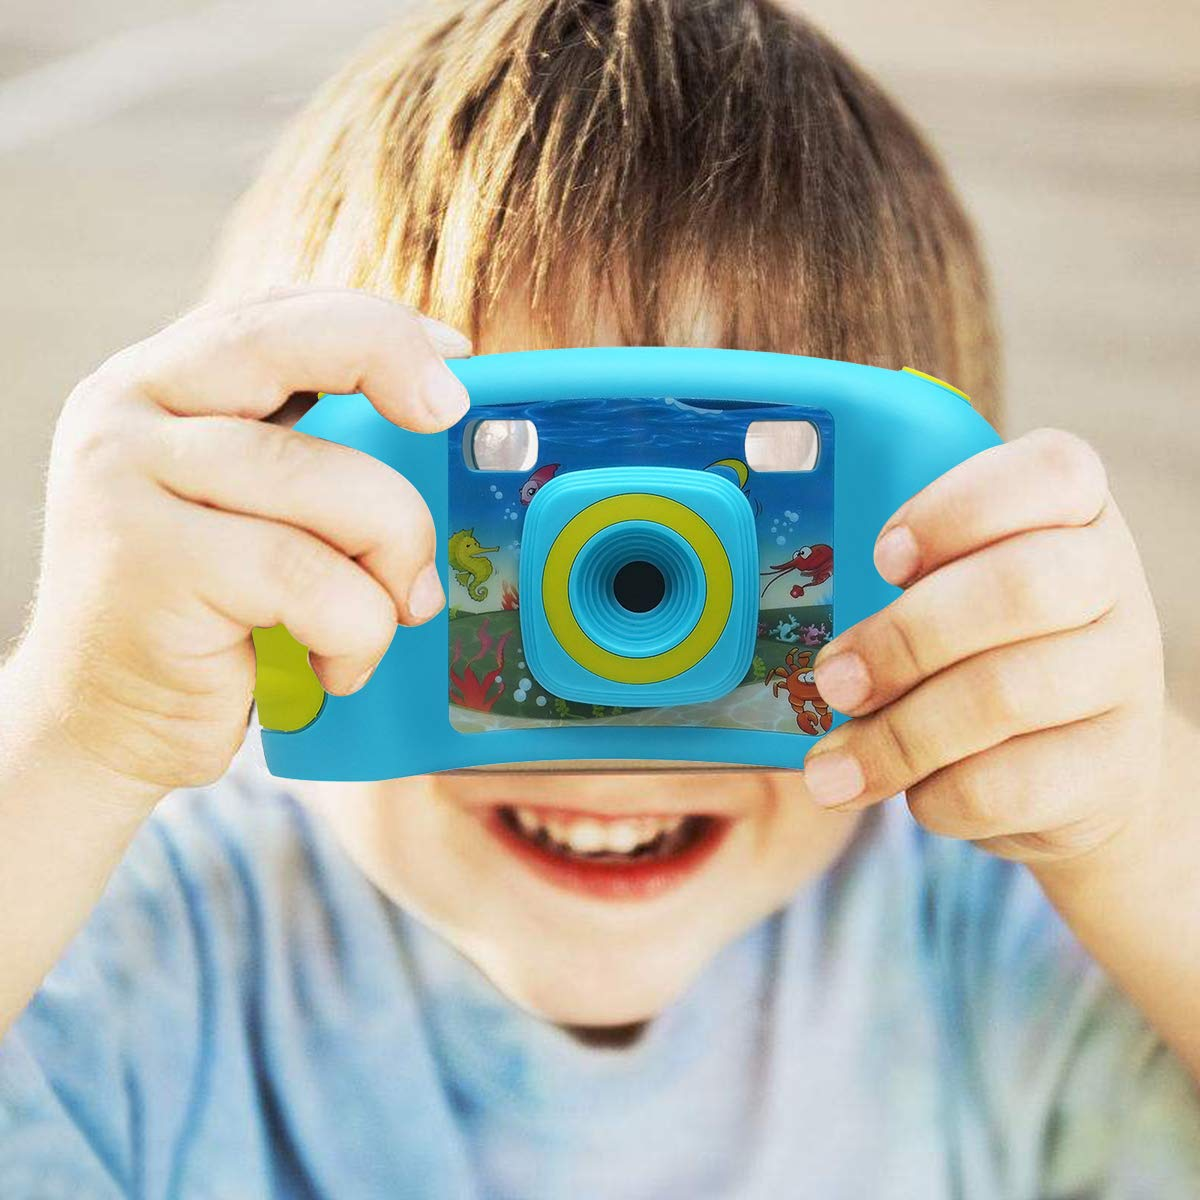 bouti1583 Digital Photo Video Cameras with Games 1.77'' LED Screen for Kids Toy by bouti1583 (Image #2)